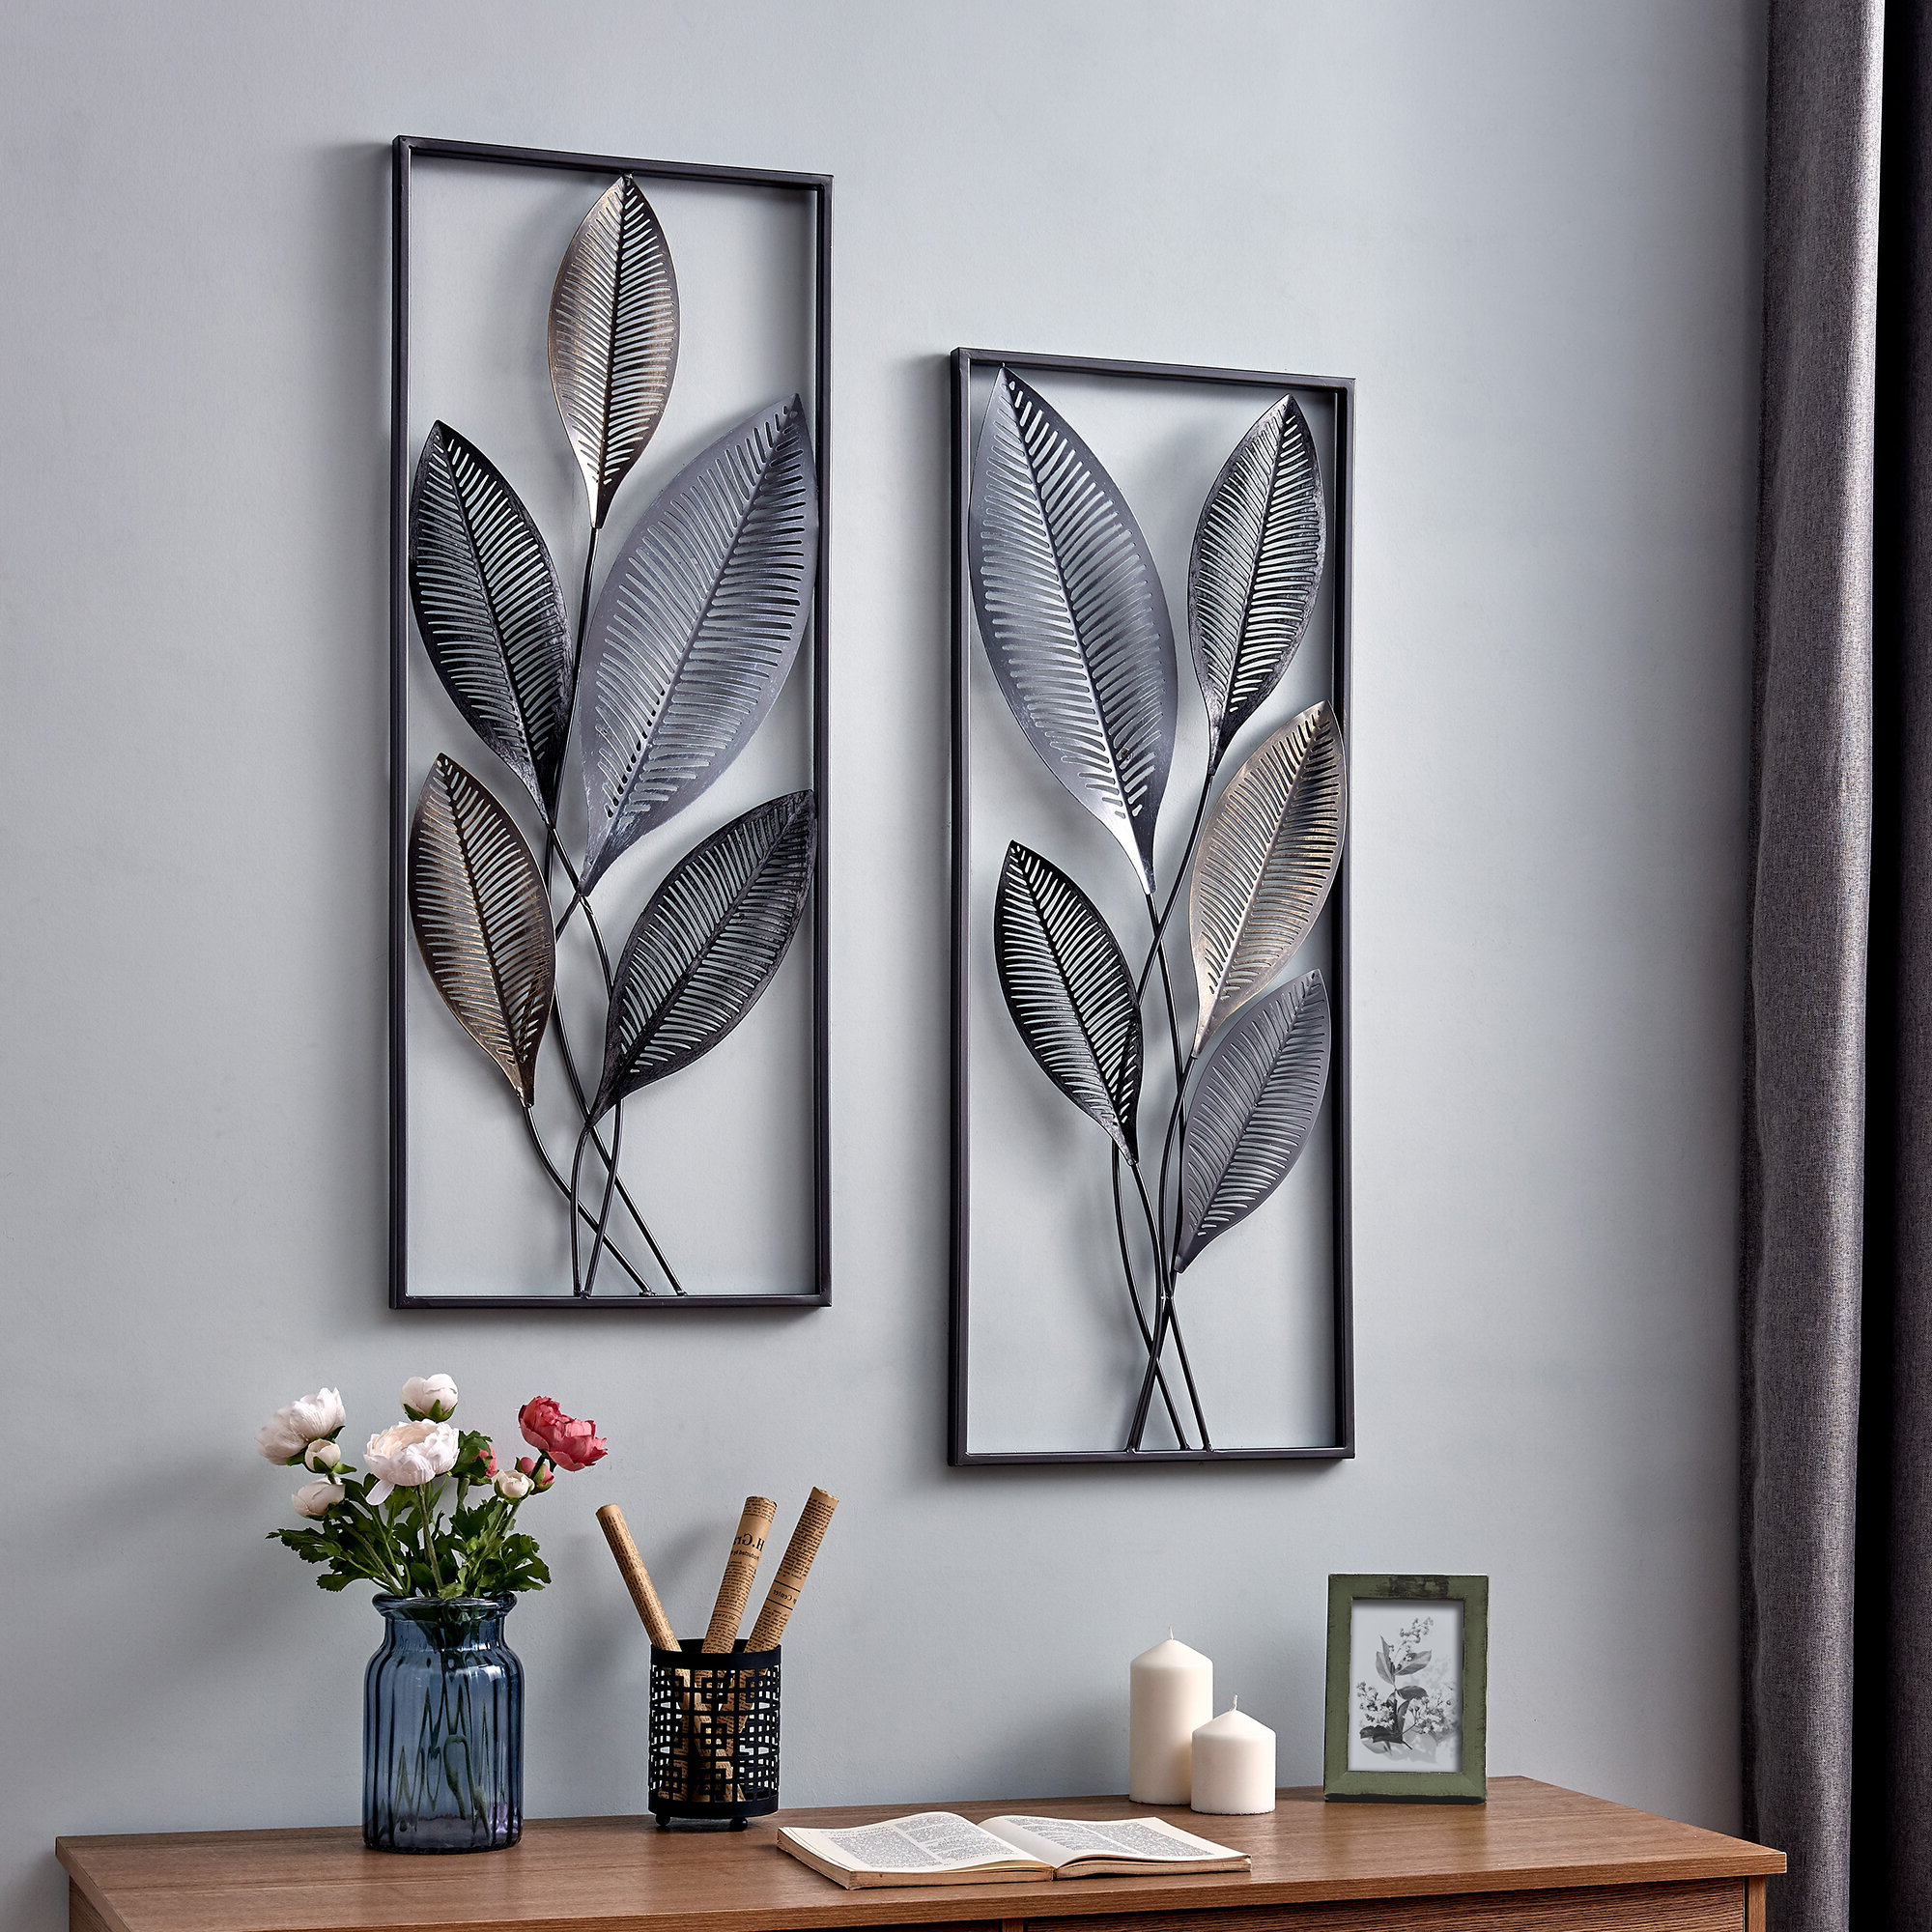 2 Piece Metallic Leaves Wall Décor Set Regarding Best And Newest Rustic Metal Wall Décor By Winston Porter (View 5 of 20)